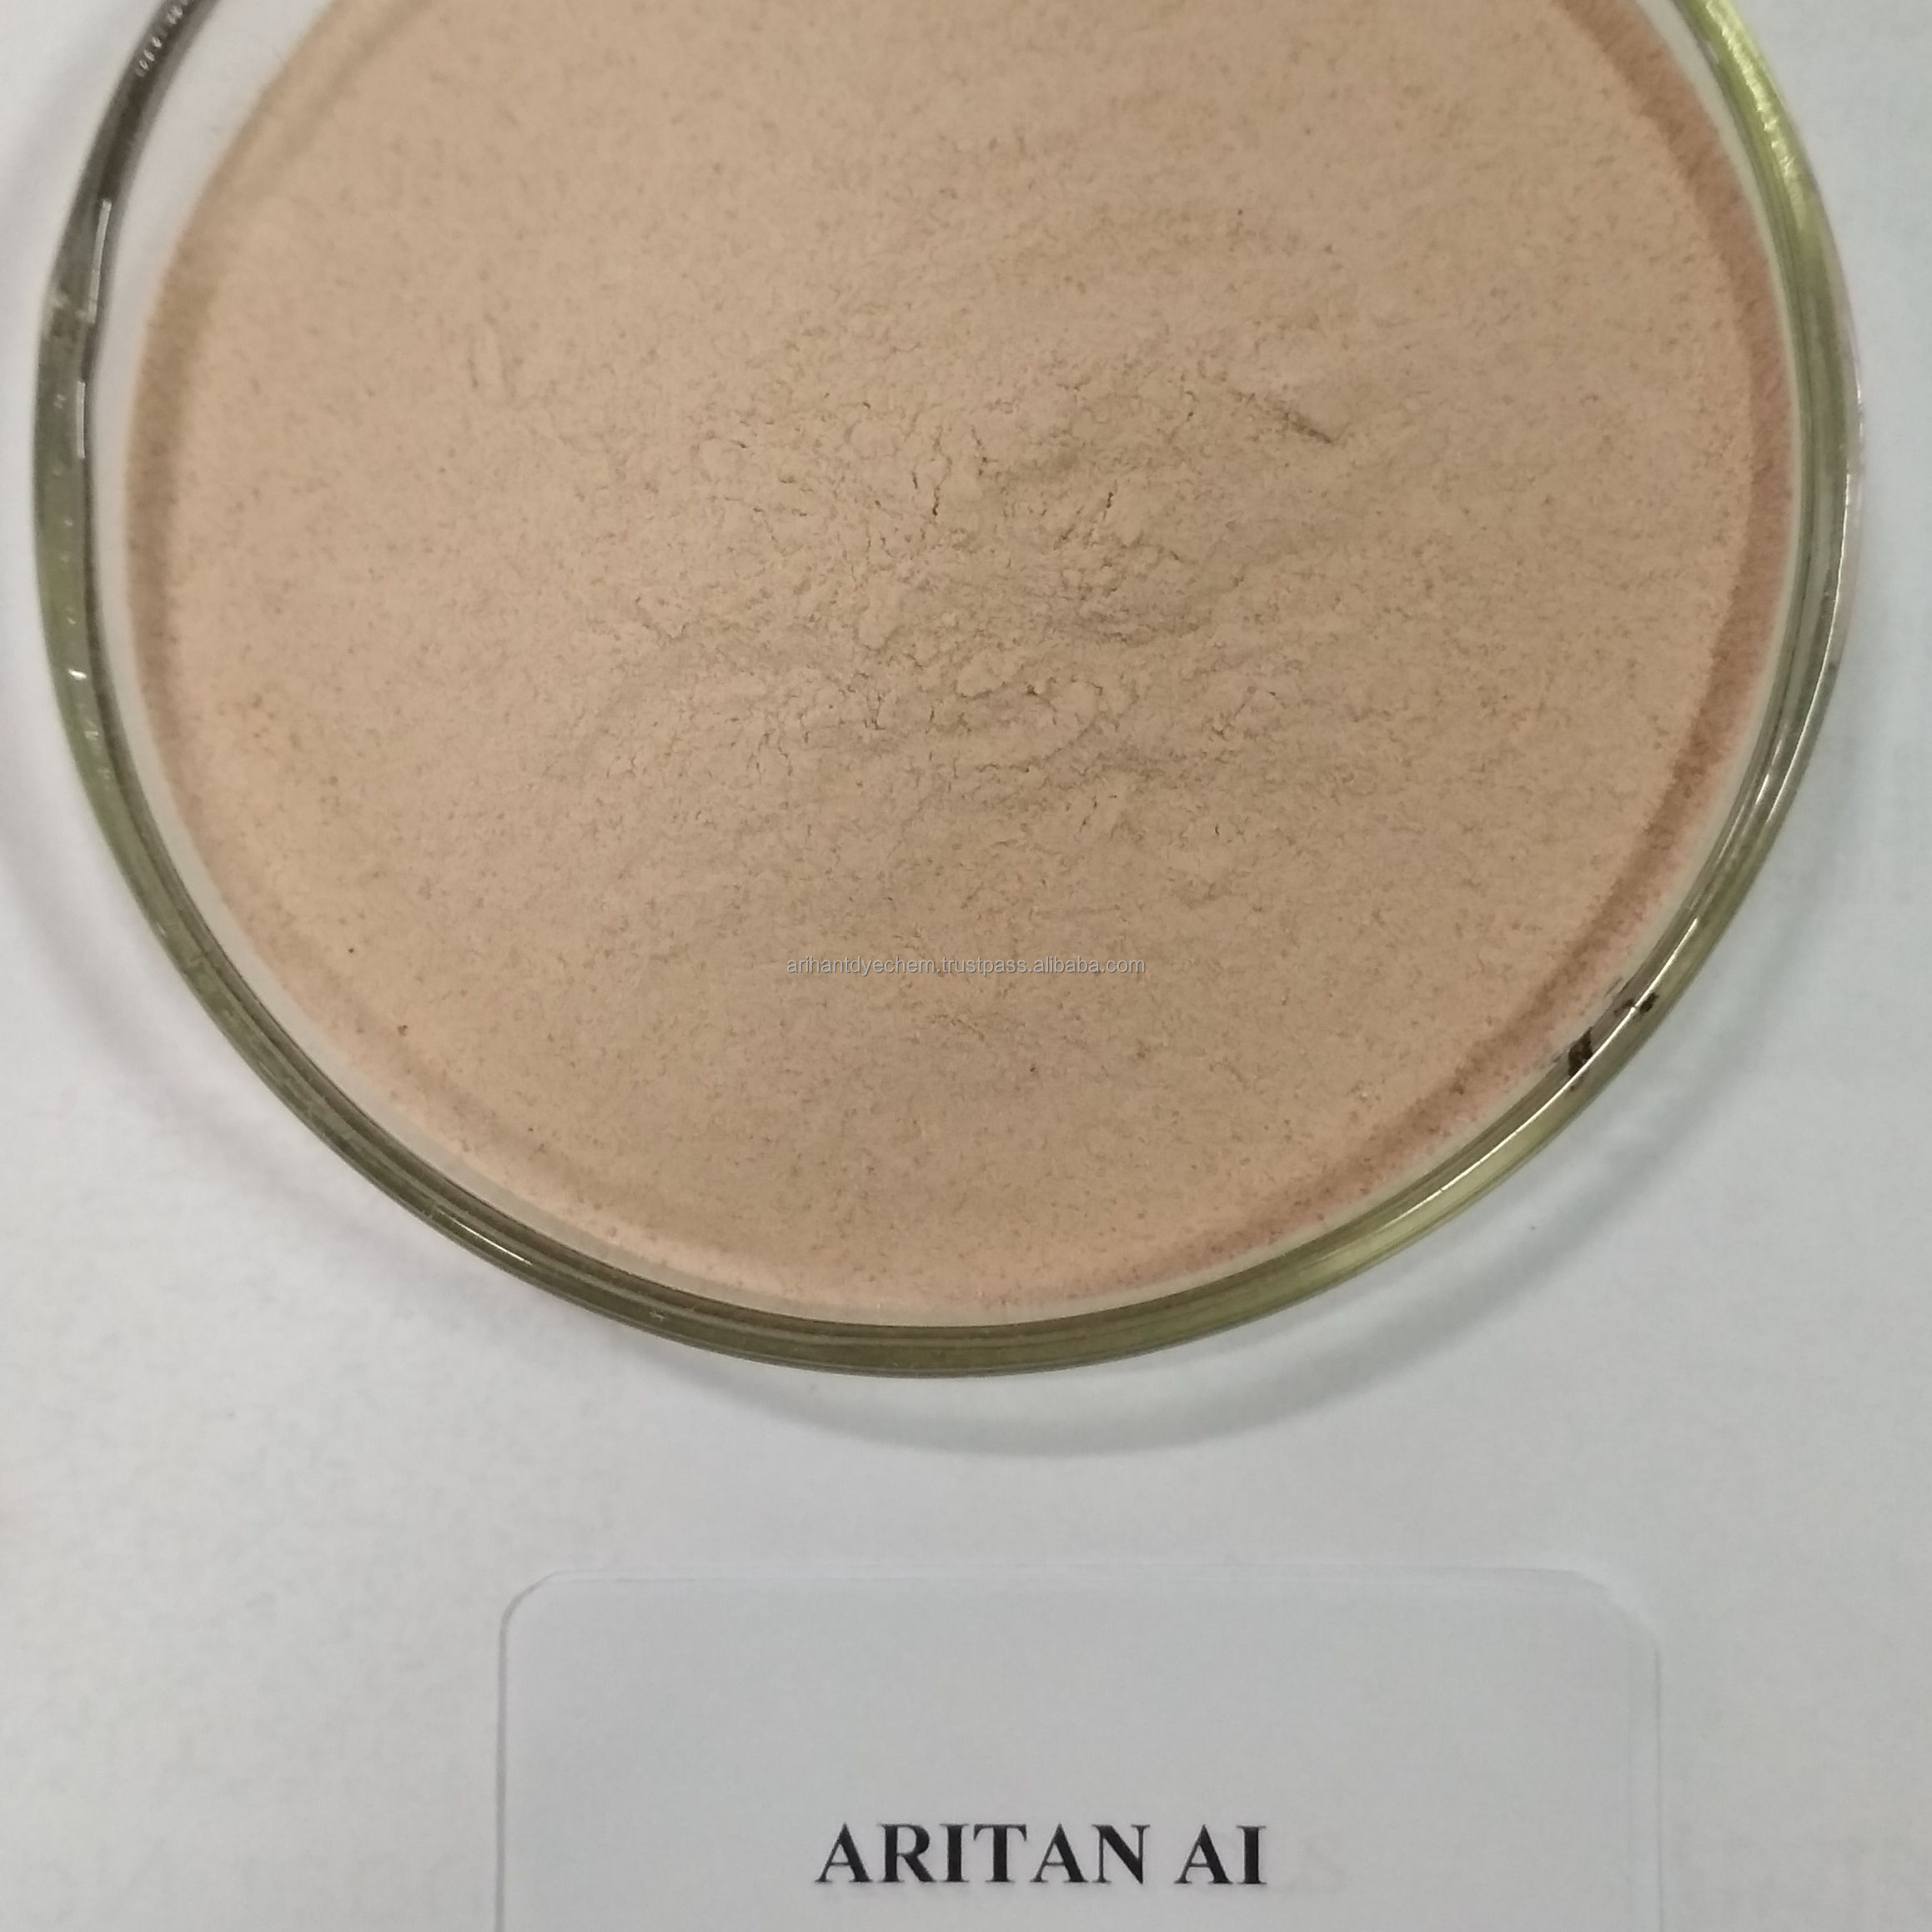 Leather Processing Chemicals ARITAN AI Synthetic Tanning Agent-High Quality by Arihant Dyechem